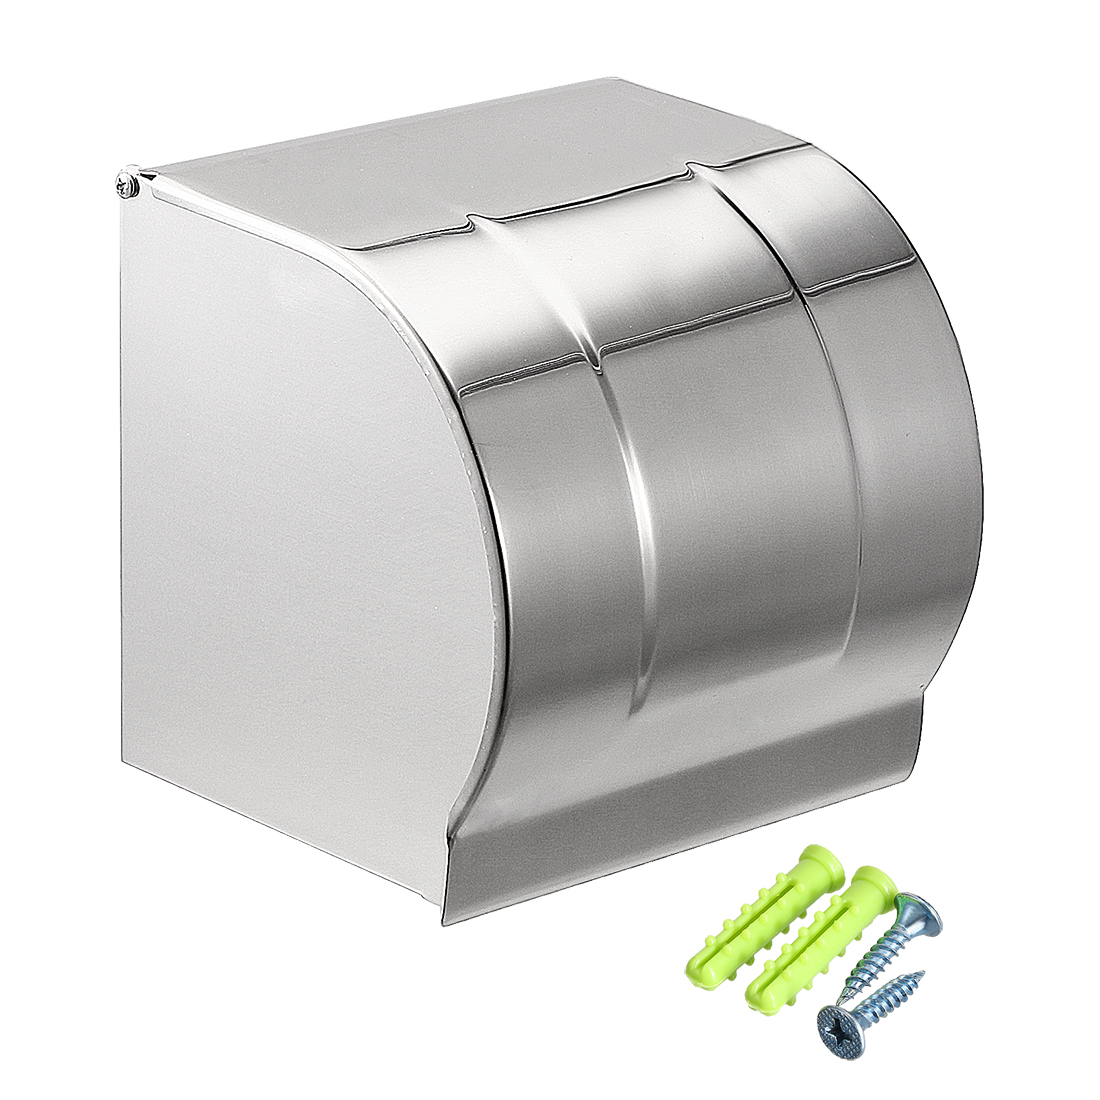 Toilet Paper Holder Stainless Steel Full Covered Wall-Mounted Glossy Sliver Tone